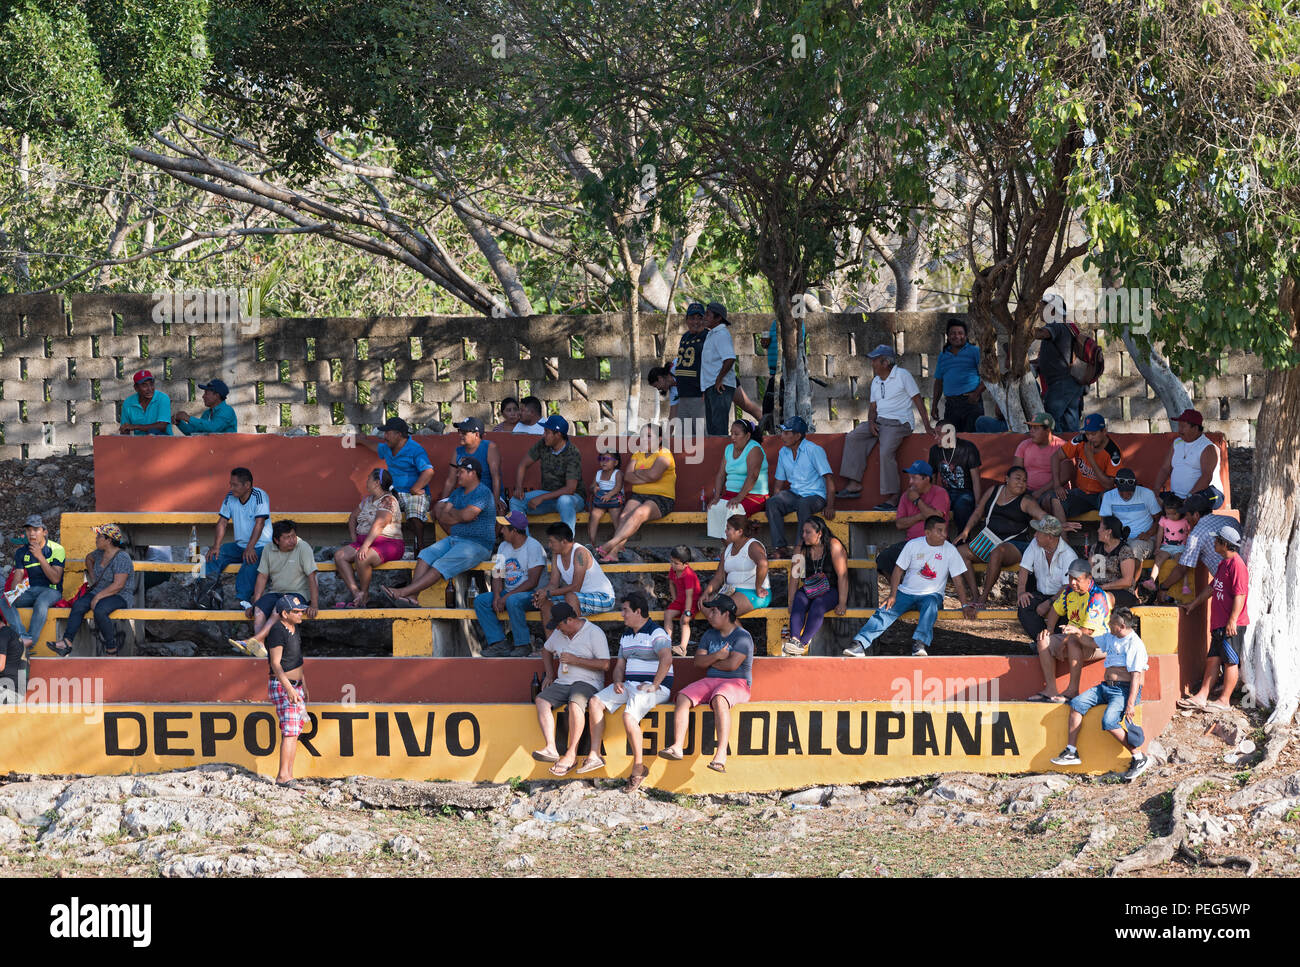 Spectators of a baseball game in the piste, Yucatán, Mexico. - Stock Image